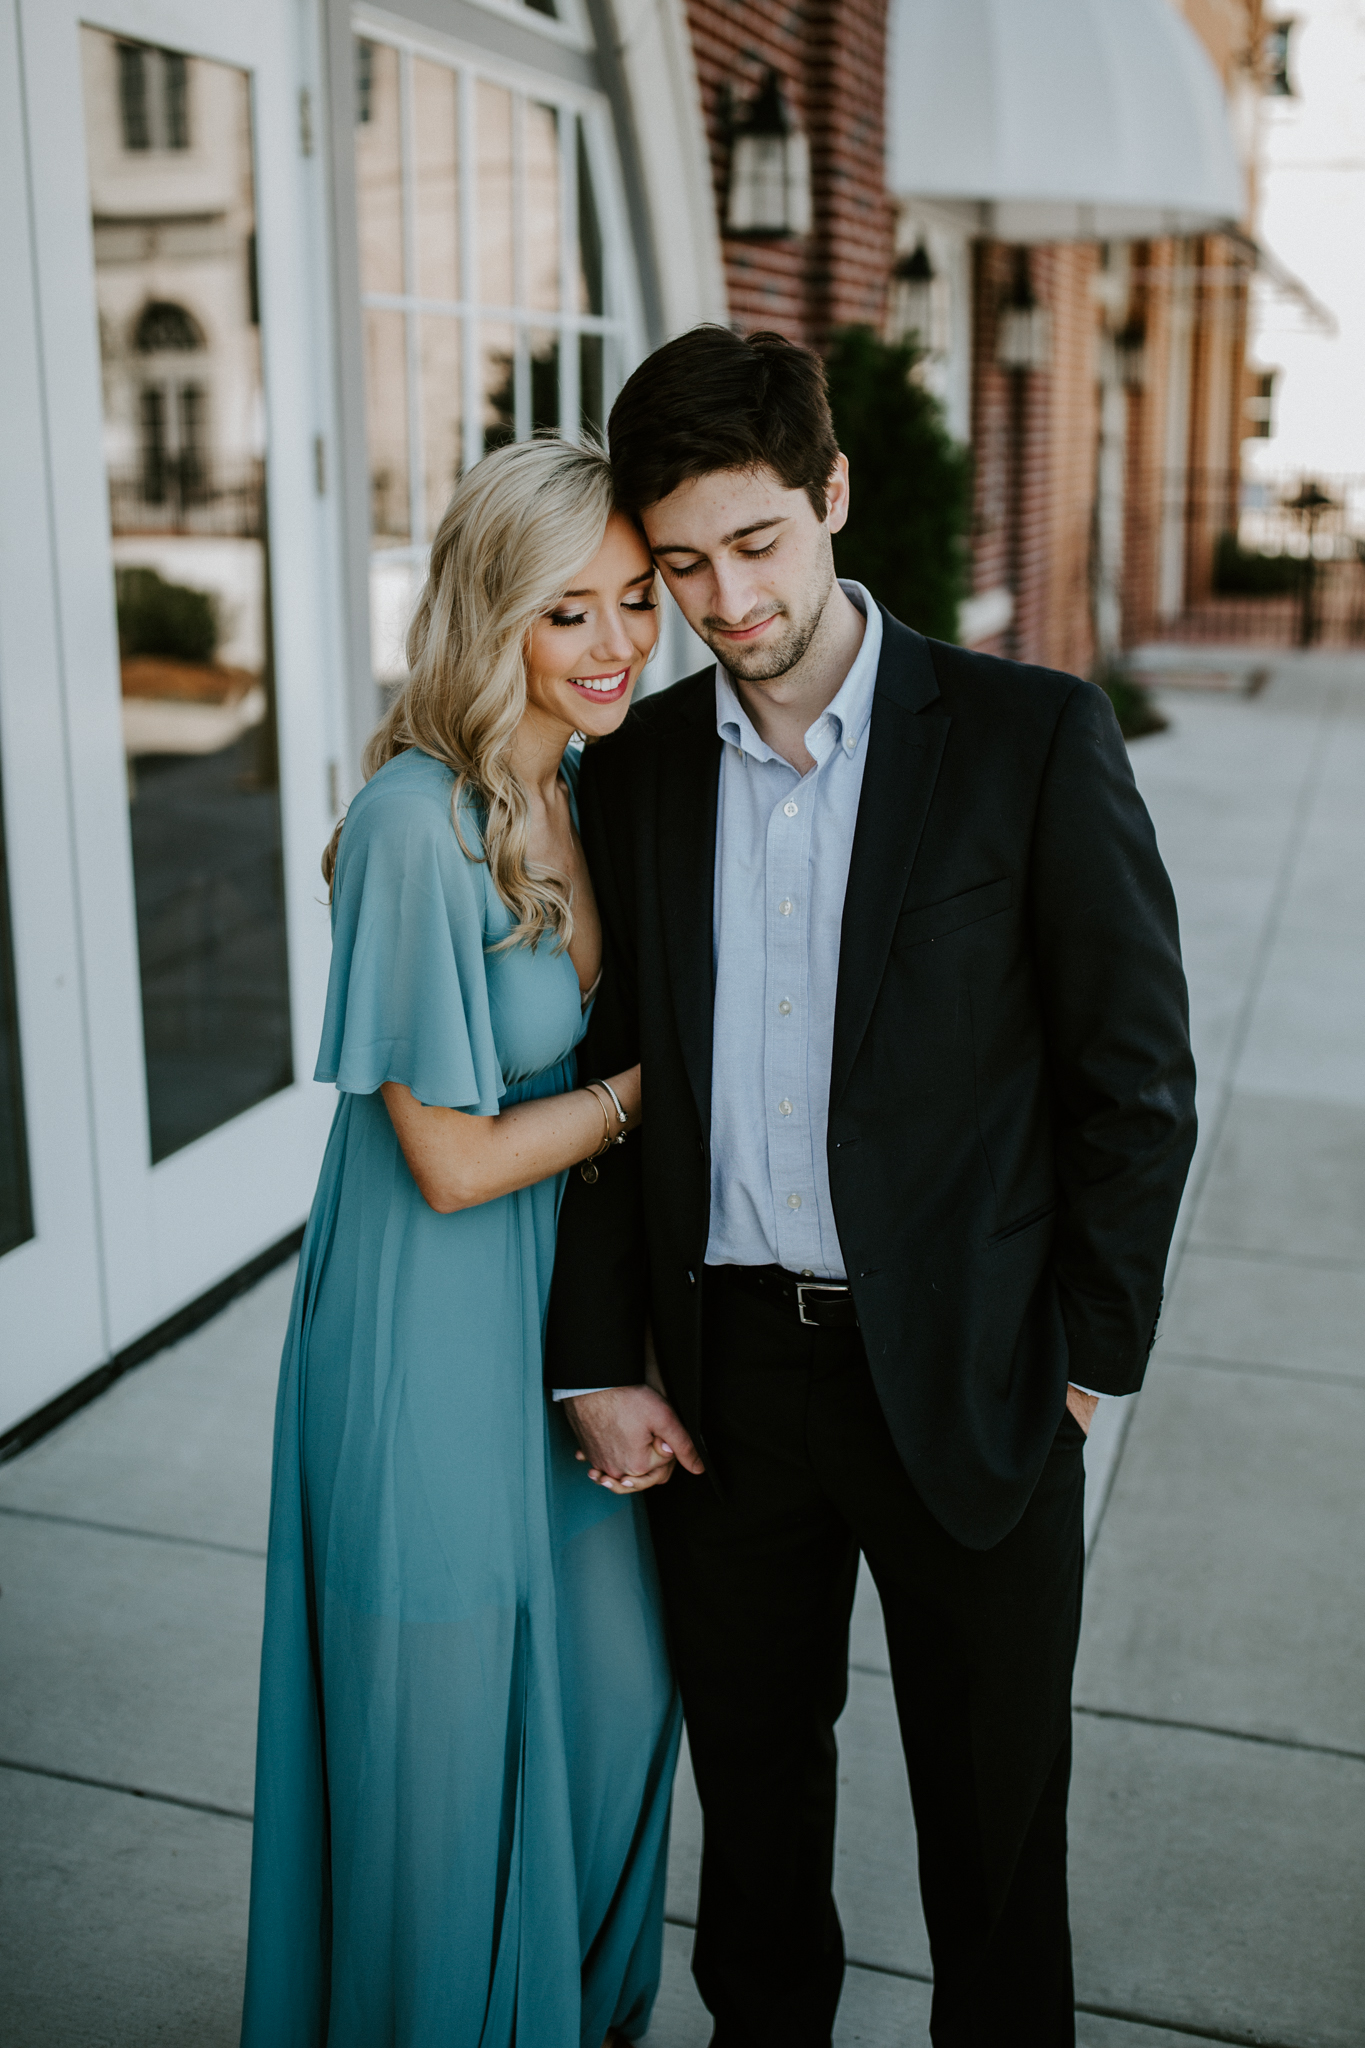 Ali-and-Jake-Chattanooga-Nashville-Tennessee-Wedding-Elopement-Photographer-65.jpg